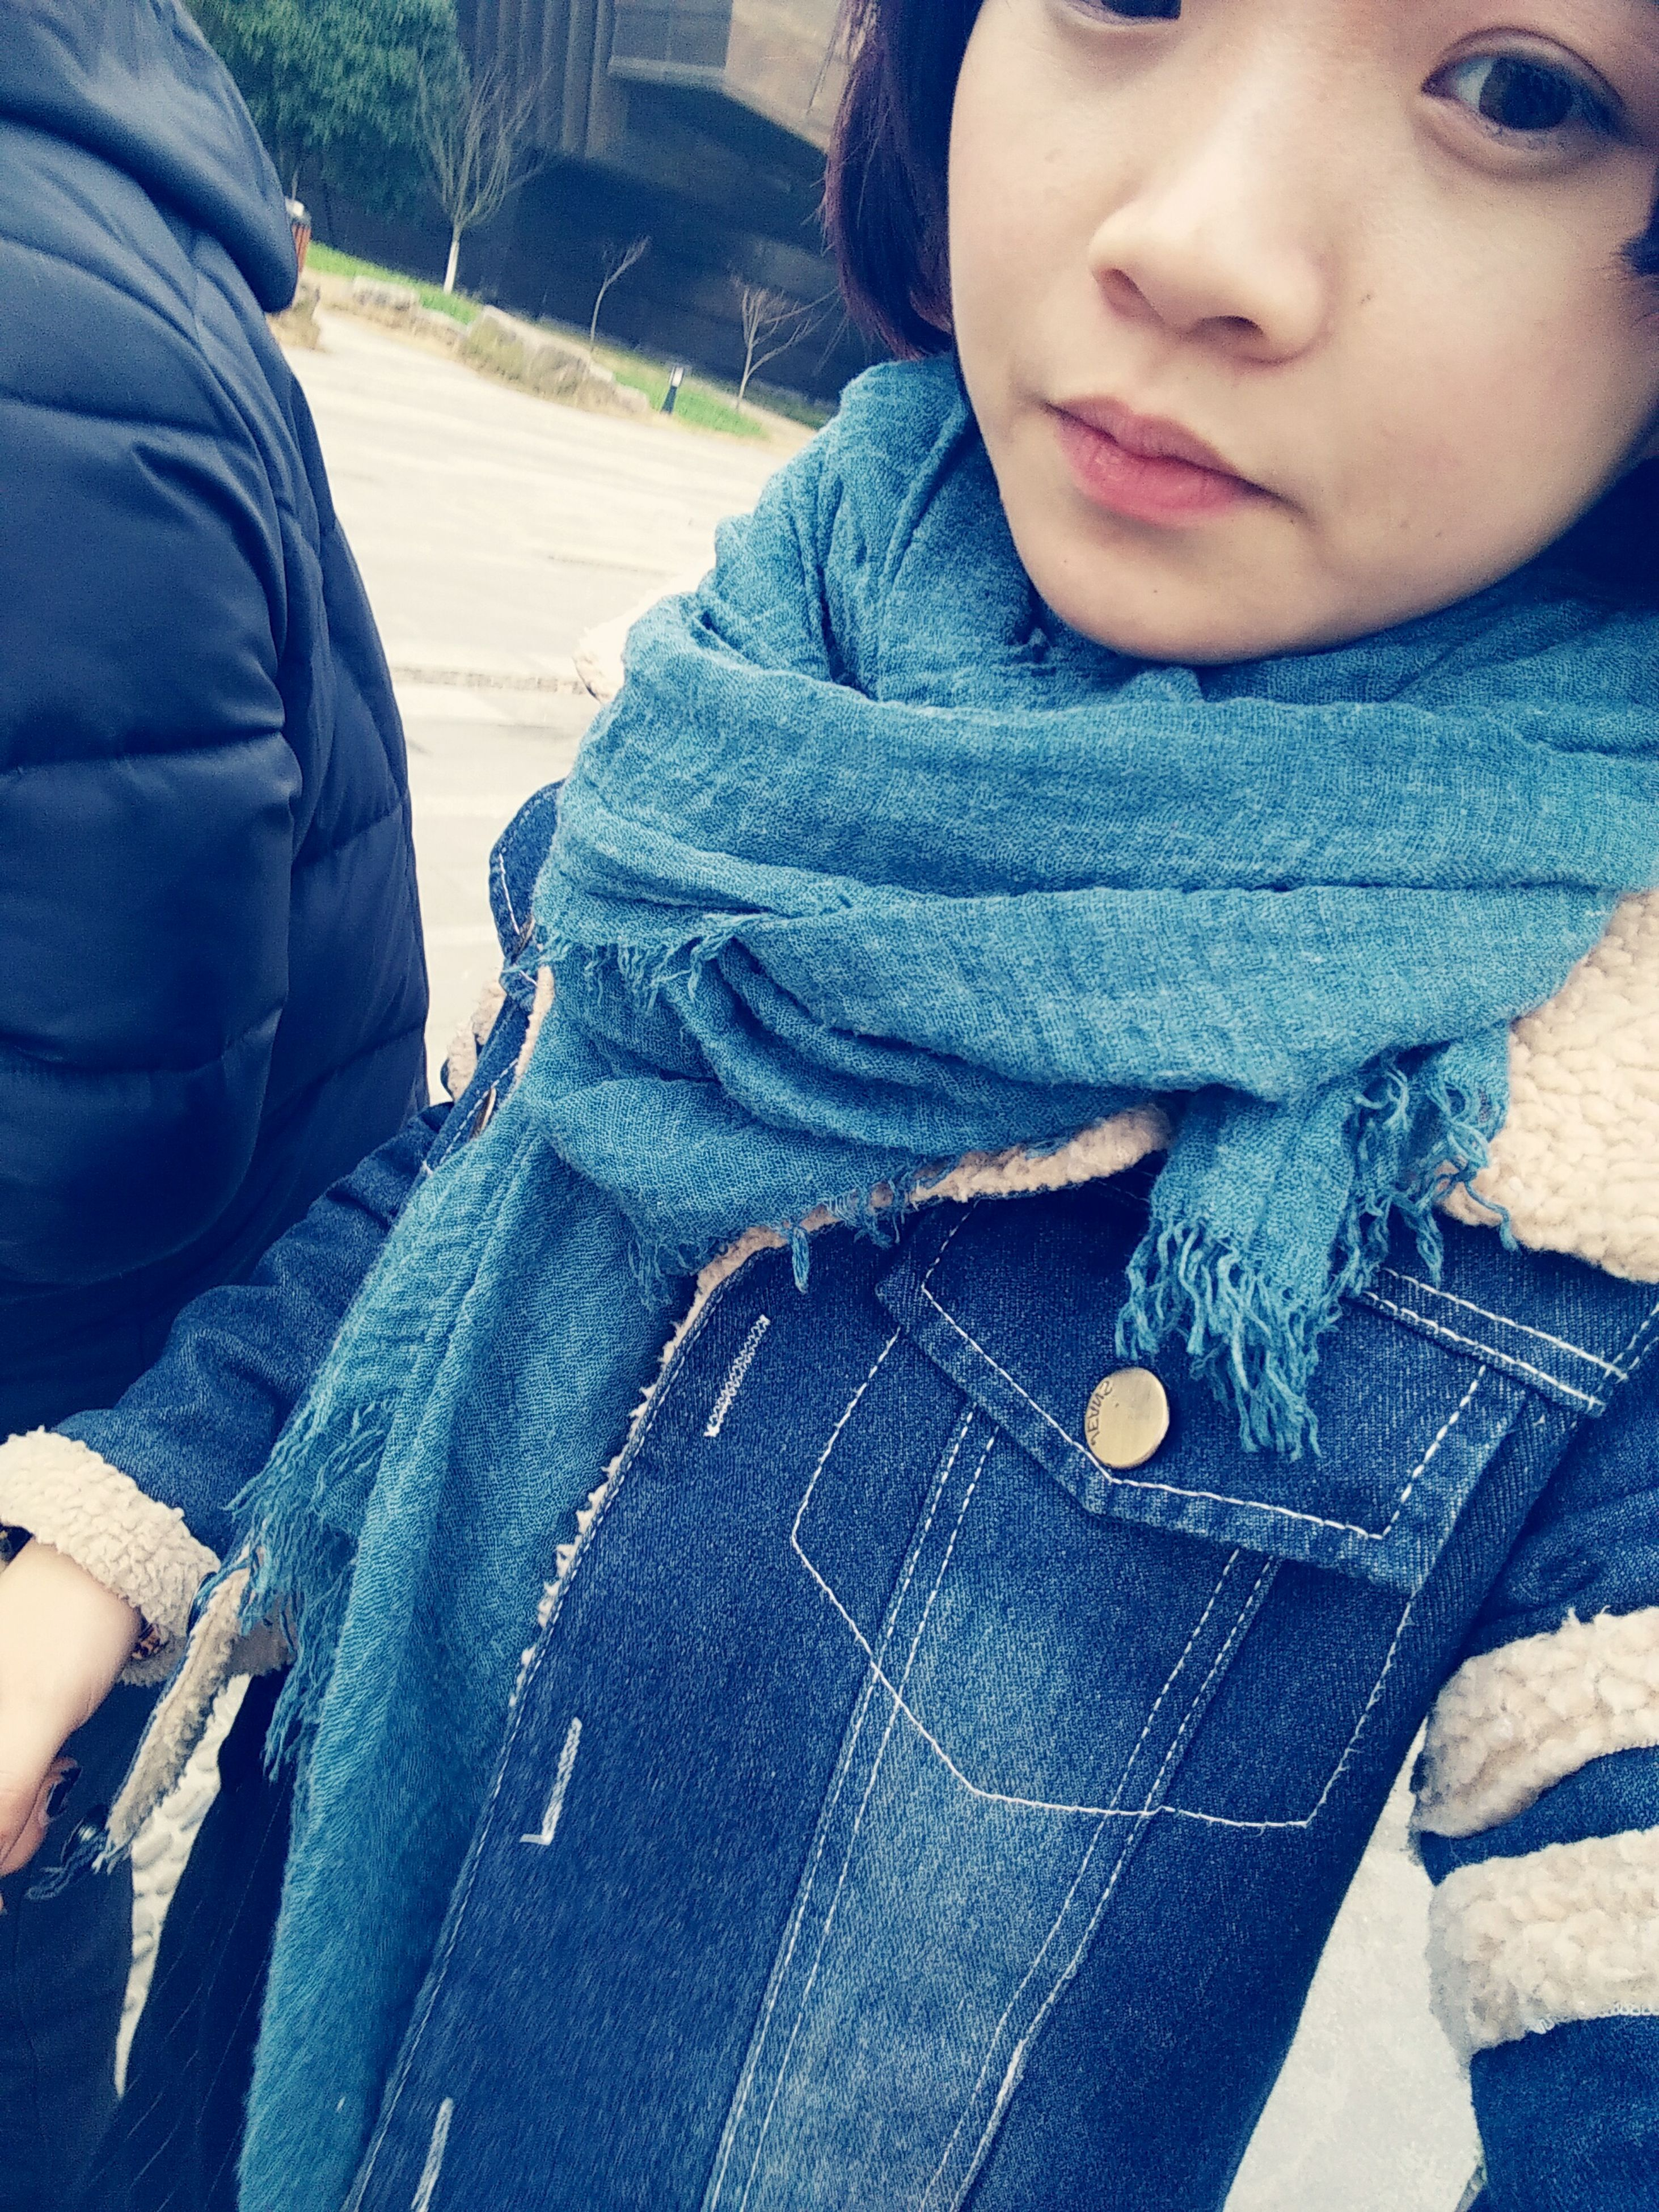 casual clothing, lifestyles, indoors, leisure activity, midsection, person, front view, childhood, jeans, high angle view, close-up, jacket, warm clothing, sitting, relaxation, holding, day